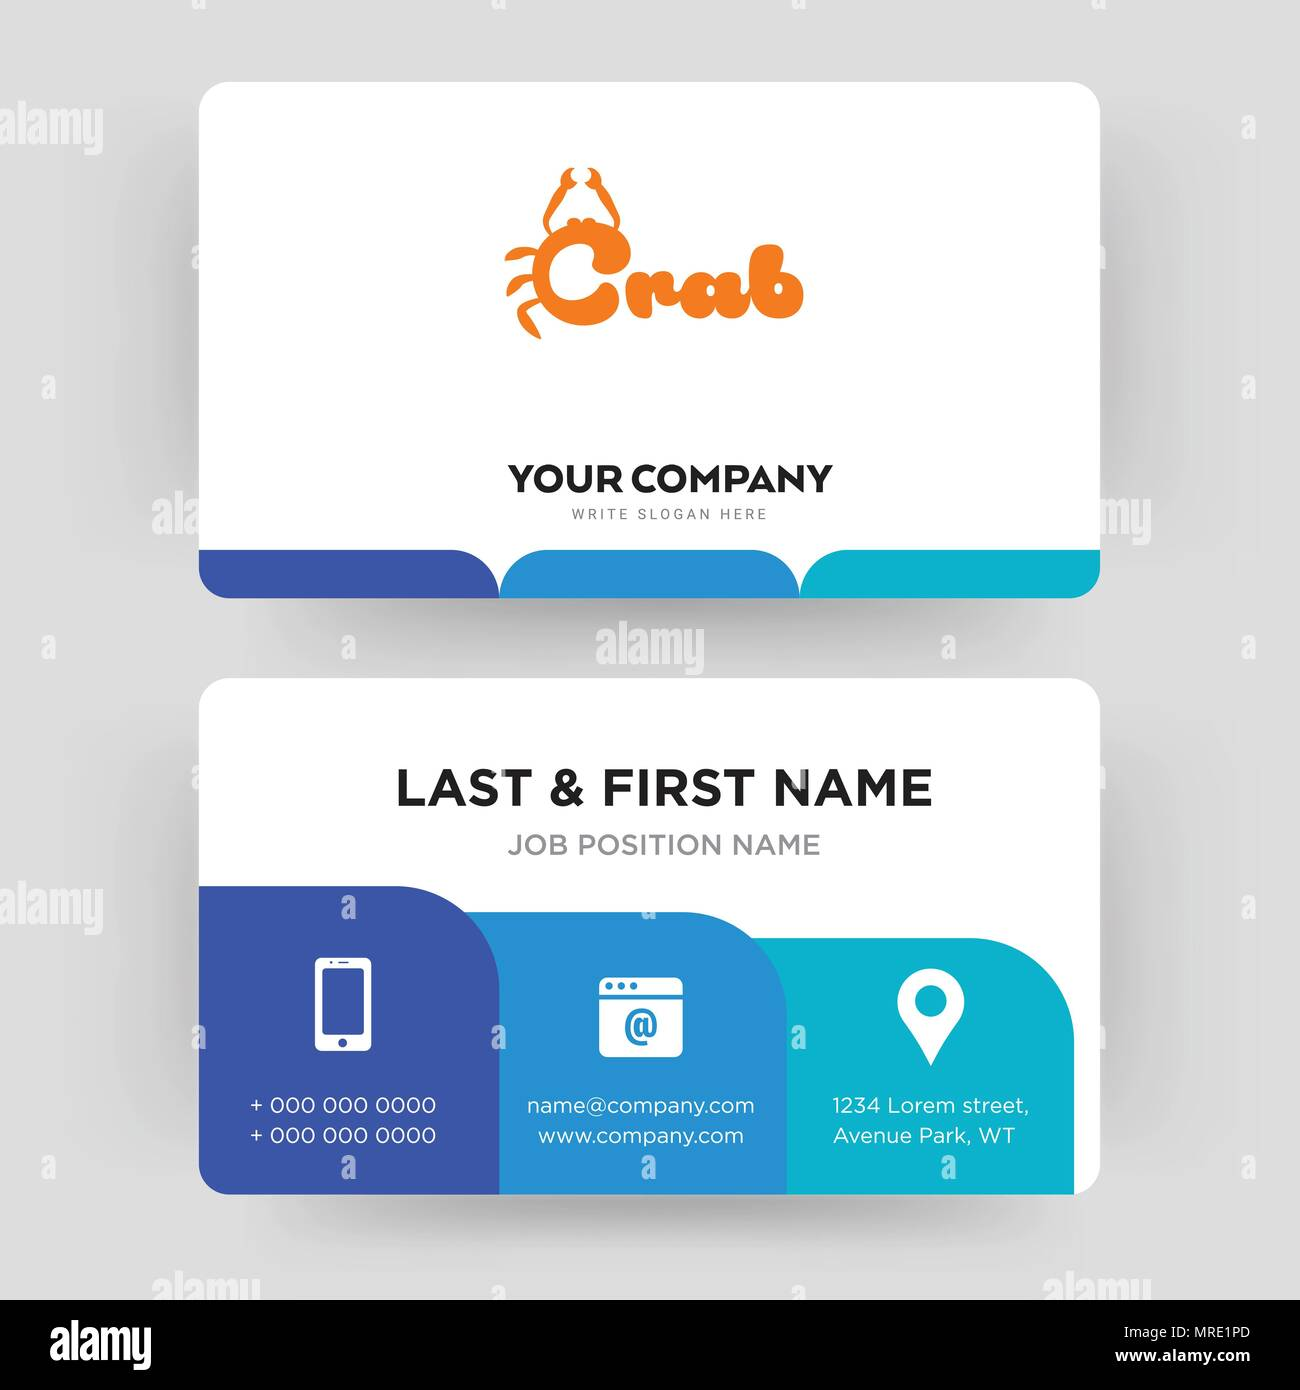 Crab business card design template visiting for your company crab business card design template visiting for your company modern creative and clean identity card vector maxwellsz